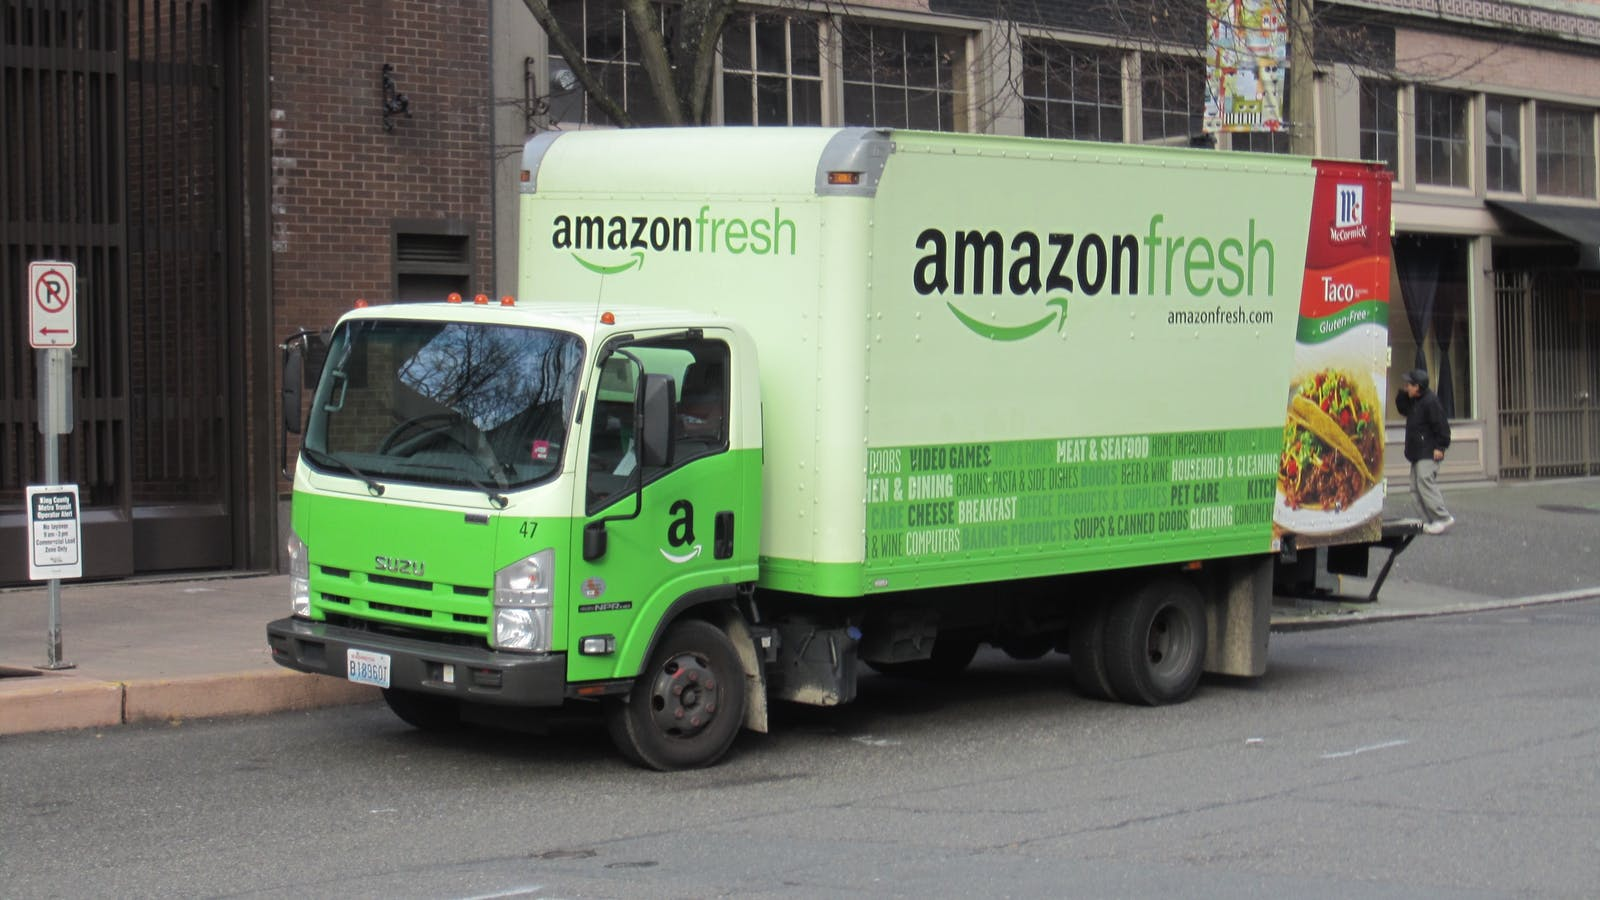 An Amazon delivery truck. Photo by Flickr/SounderBruce.